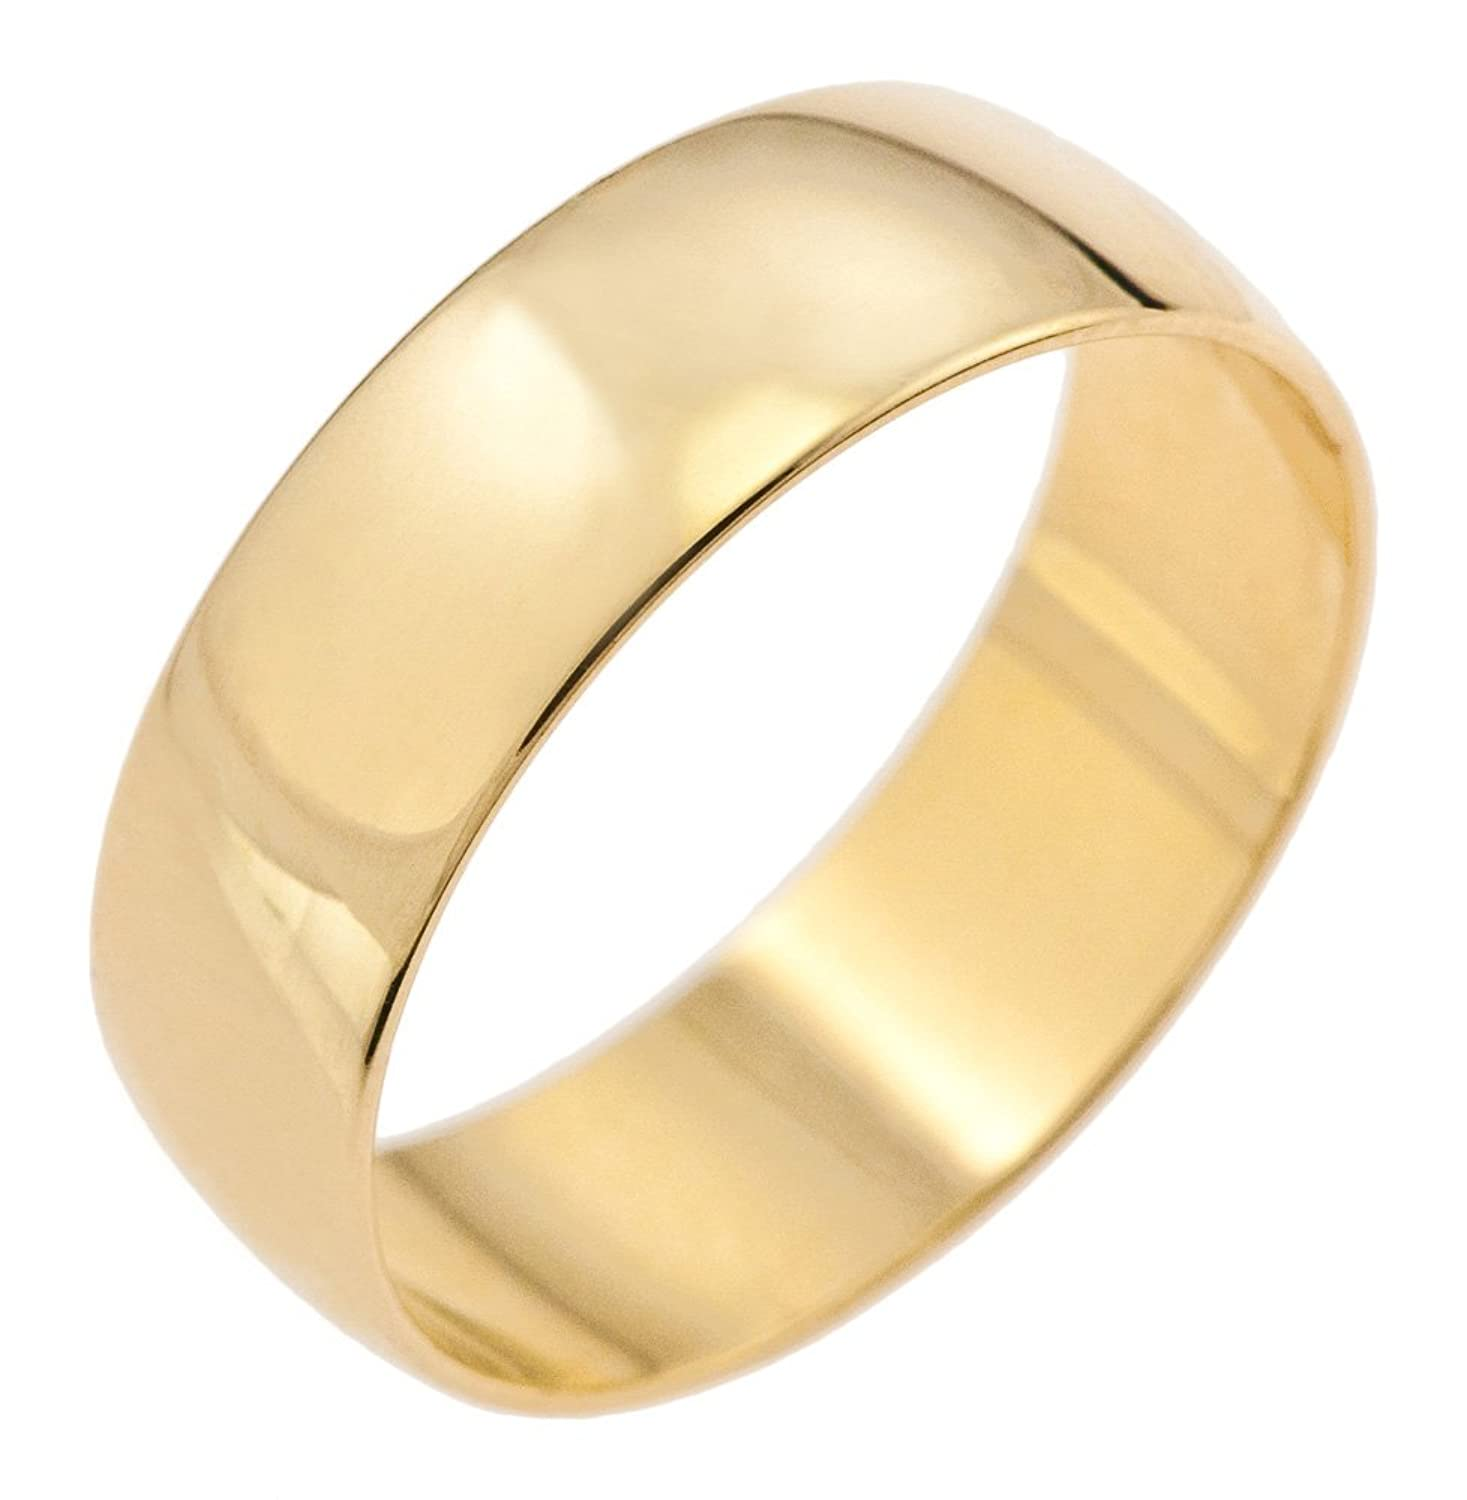 Kareco 9ct Yellow Gold 6mm D Shape Wedding Ring Amazon